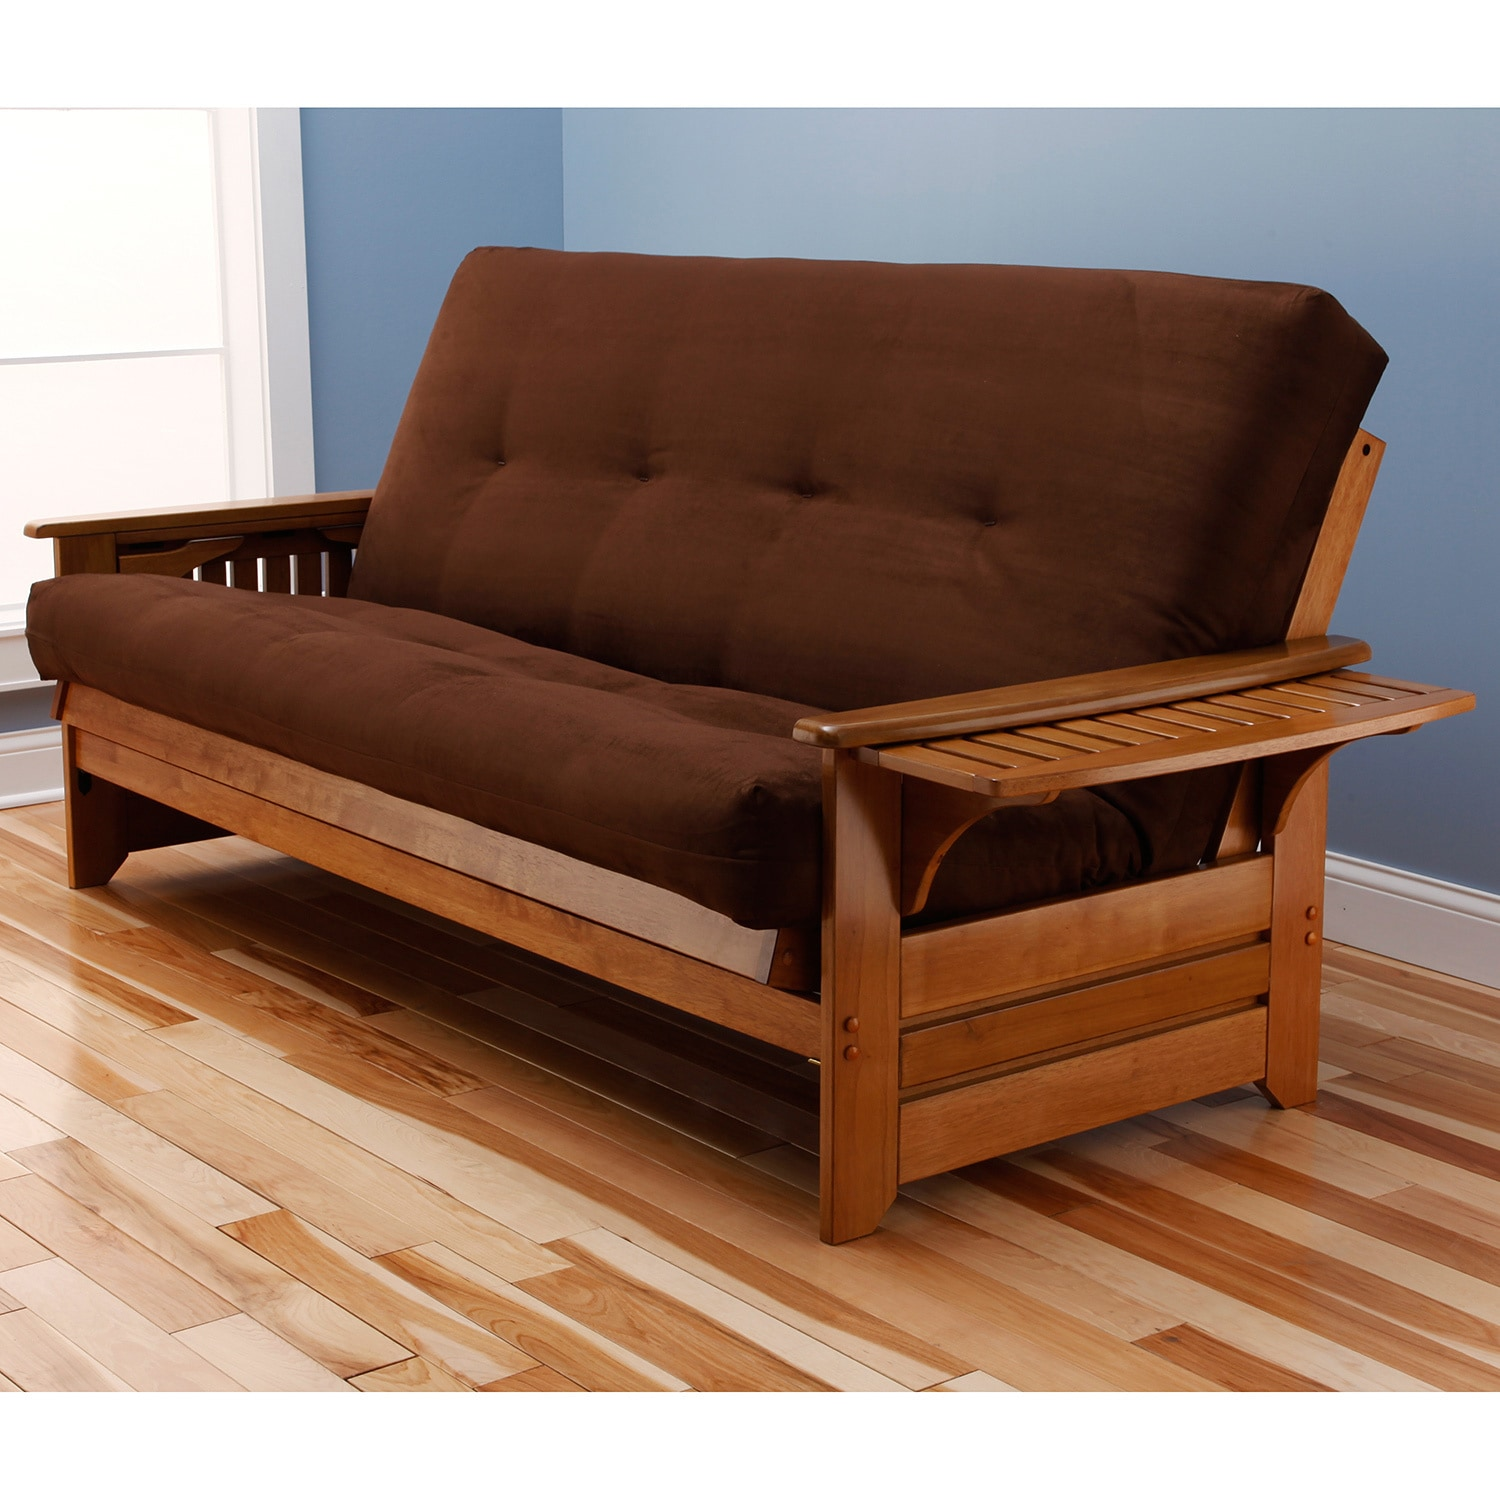 beds mattress frame futon busters price bedroom product and sales